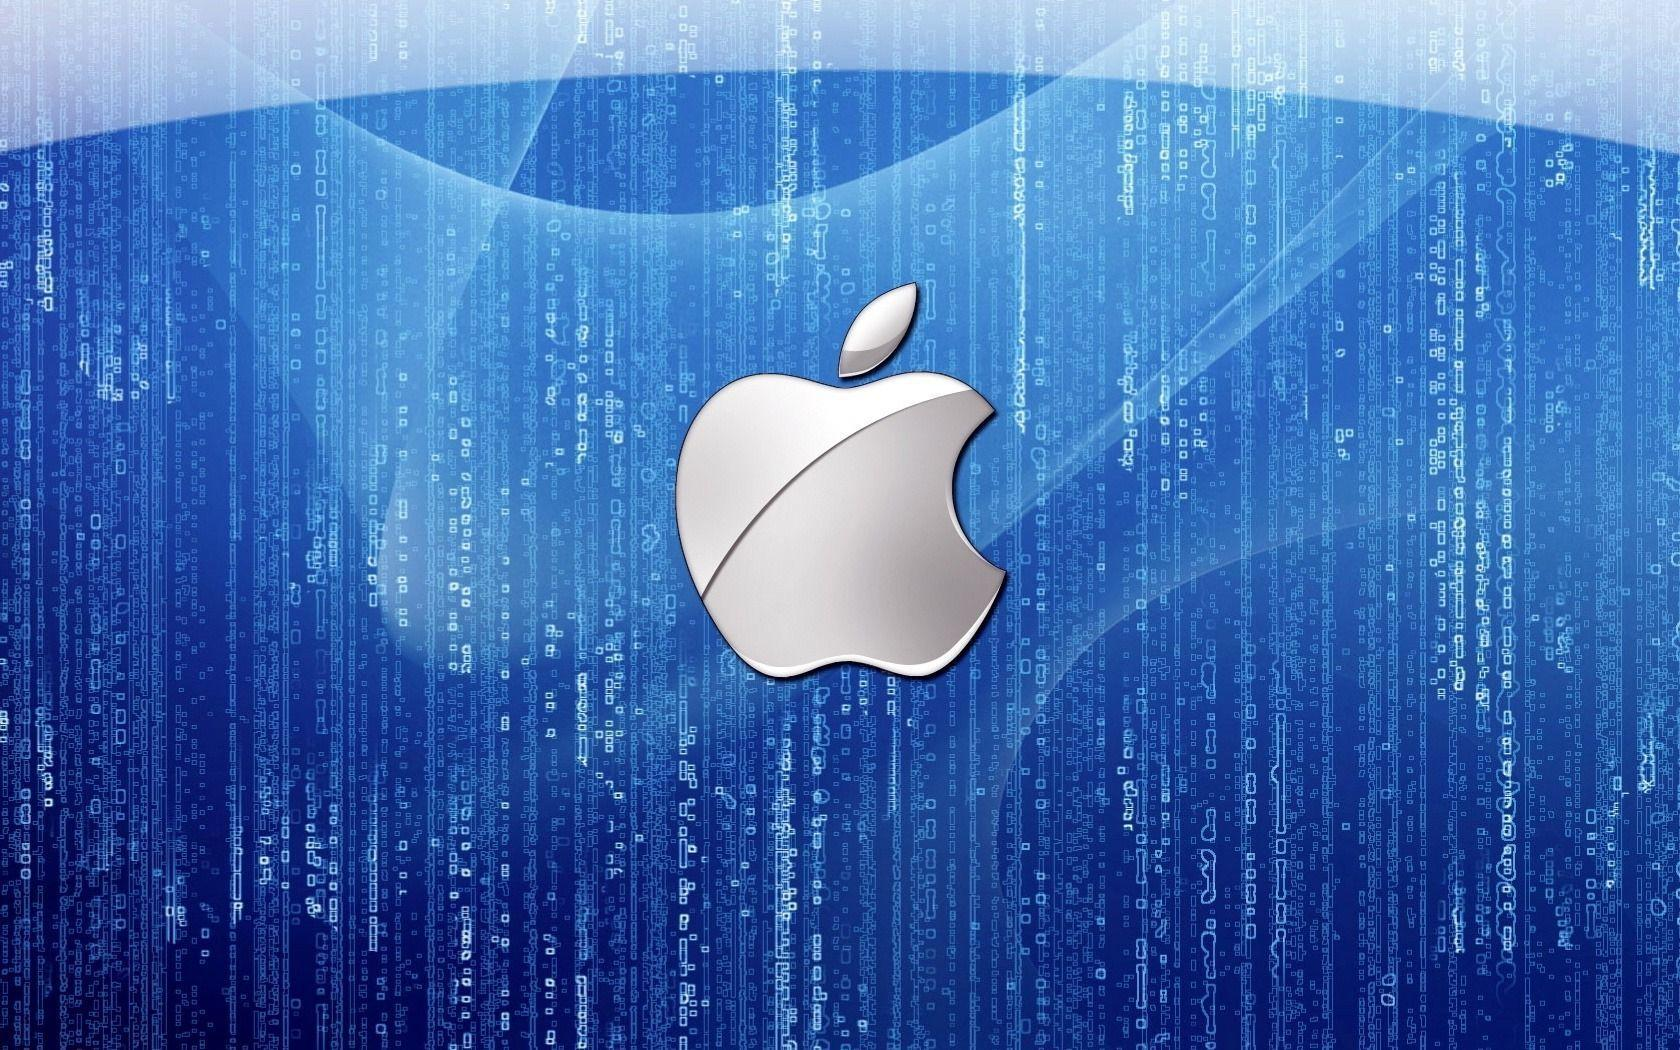 apple logo hd wallpapers - DriverLayer Search Engine